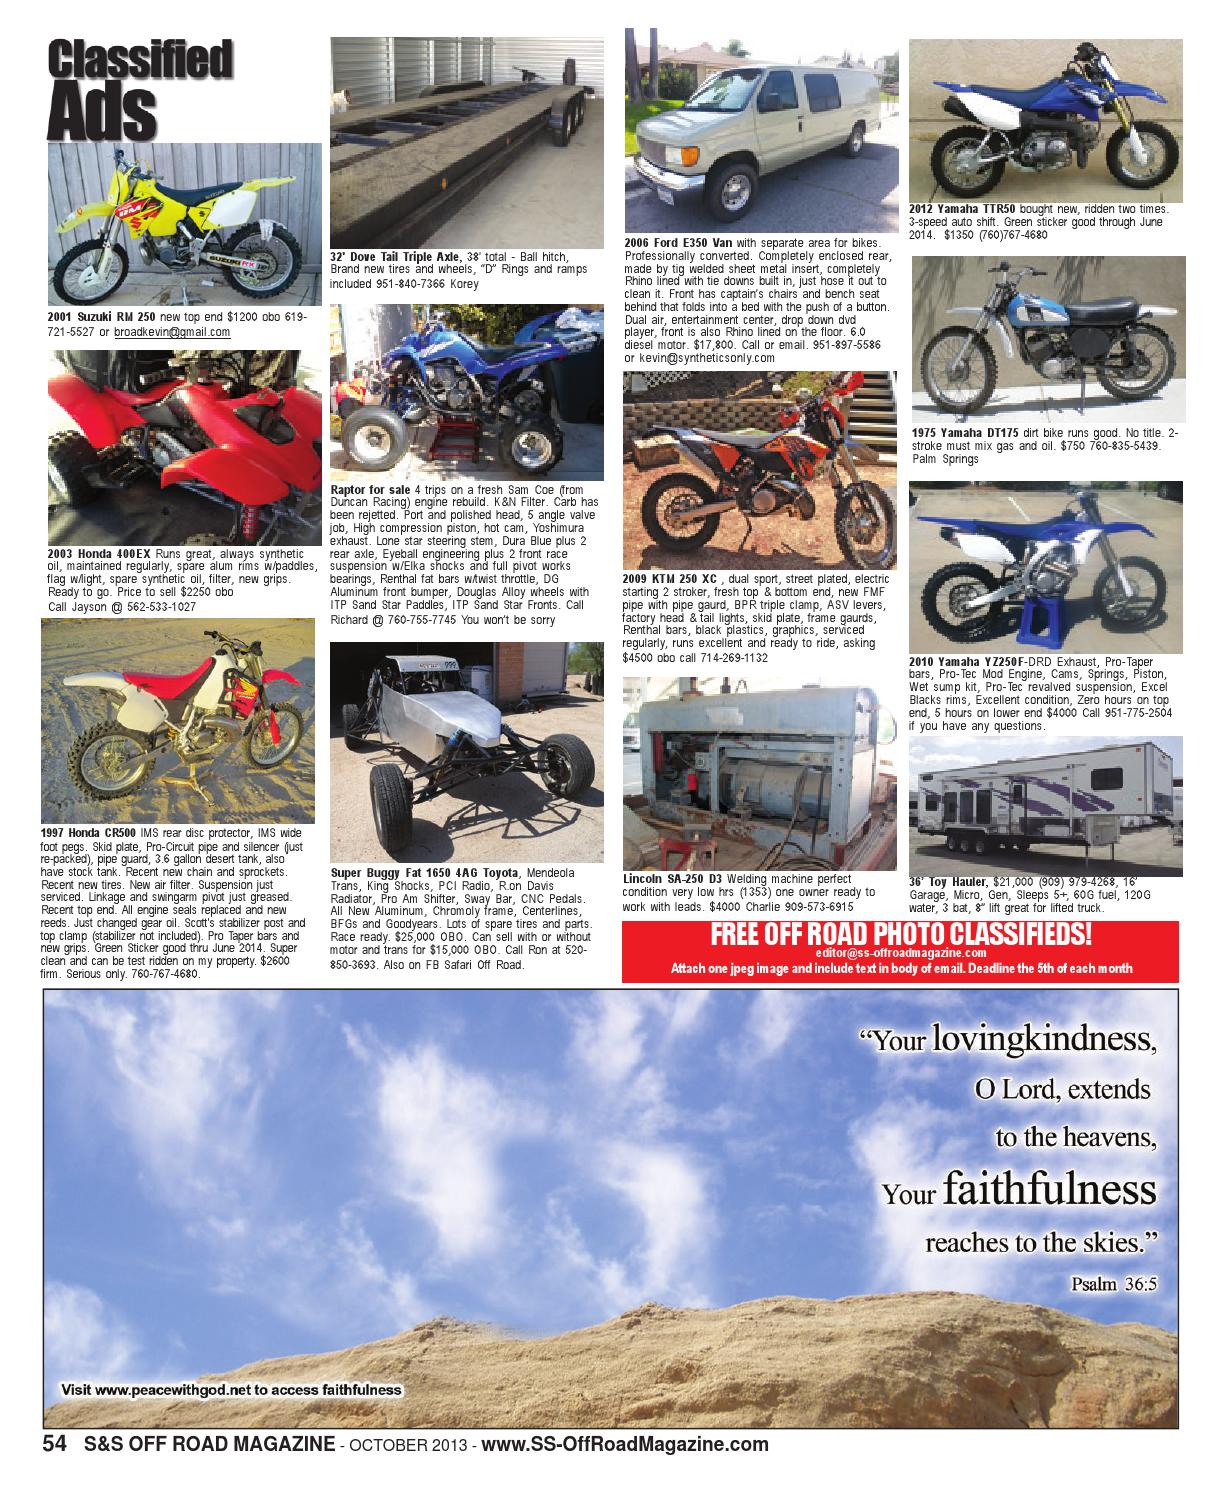 S&S Off Road Magazine October 2013 by S&S Off Road Magazine